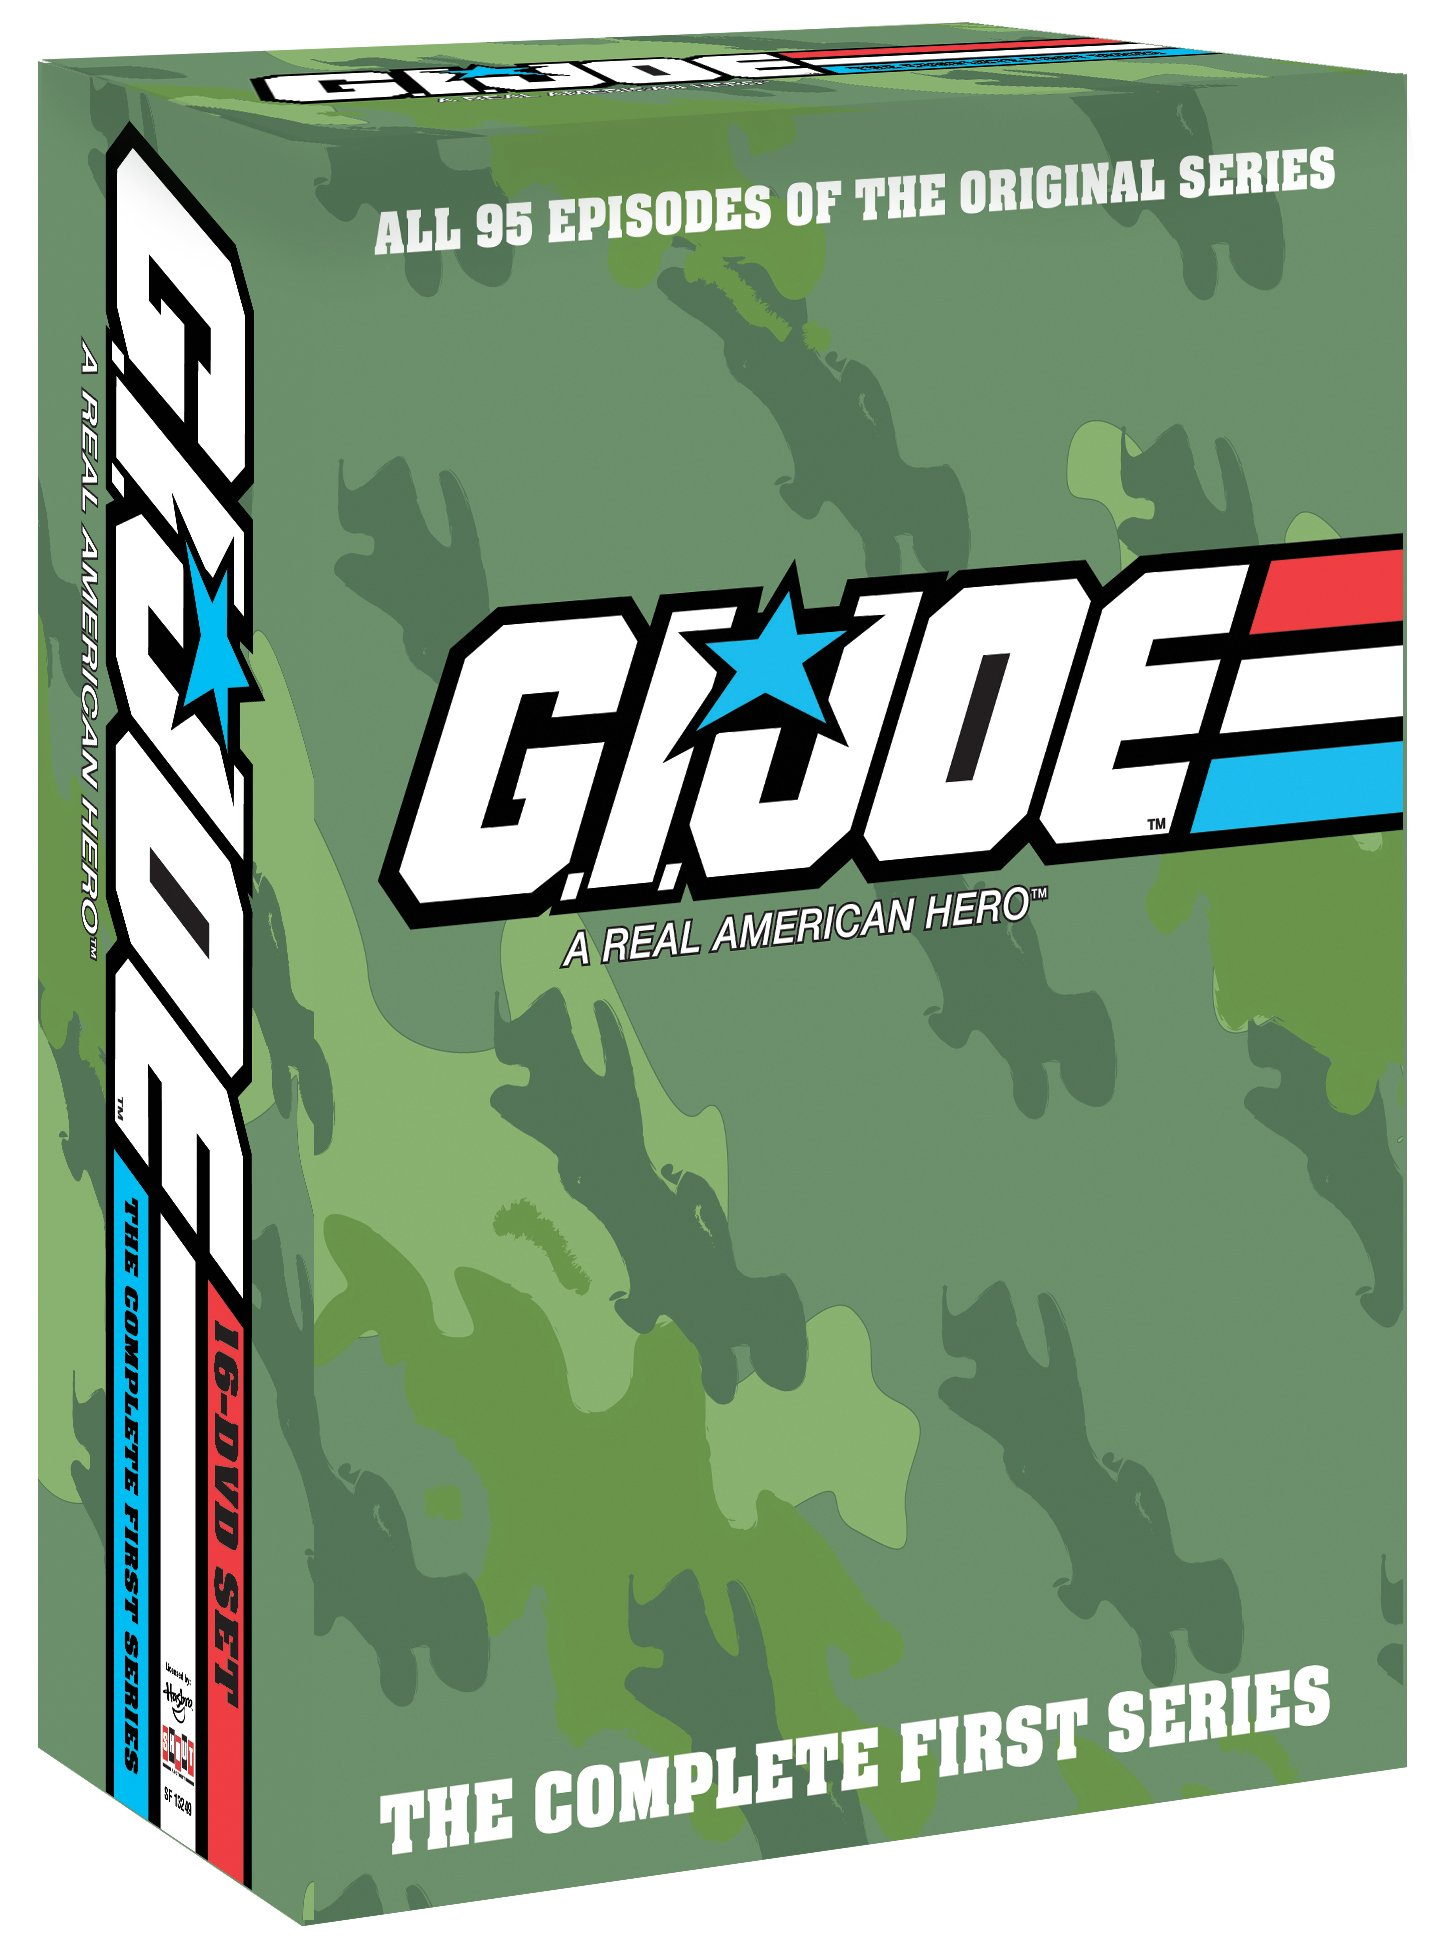 G.I. Joe: A Real American Hero - The Complete First Series by Shout! Factory